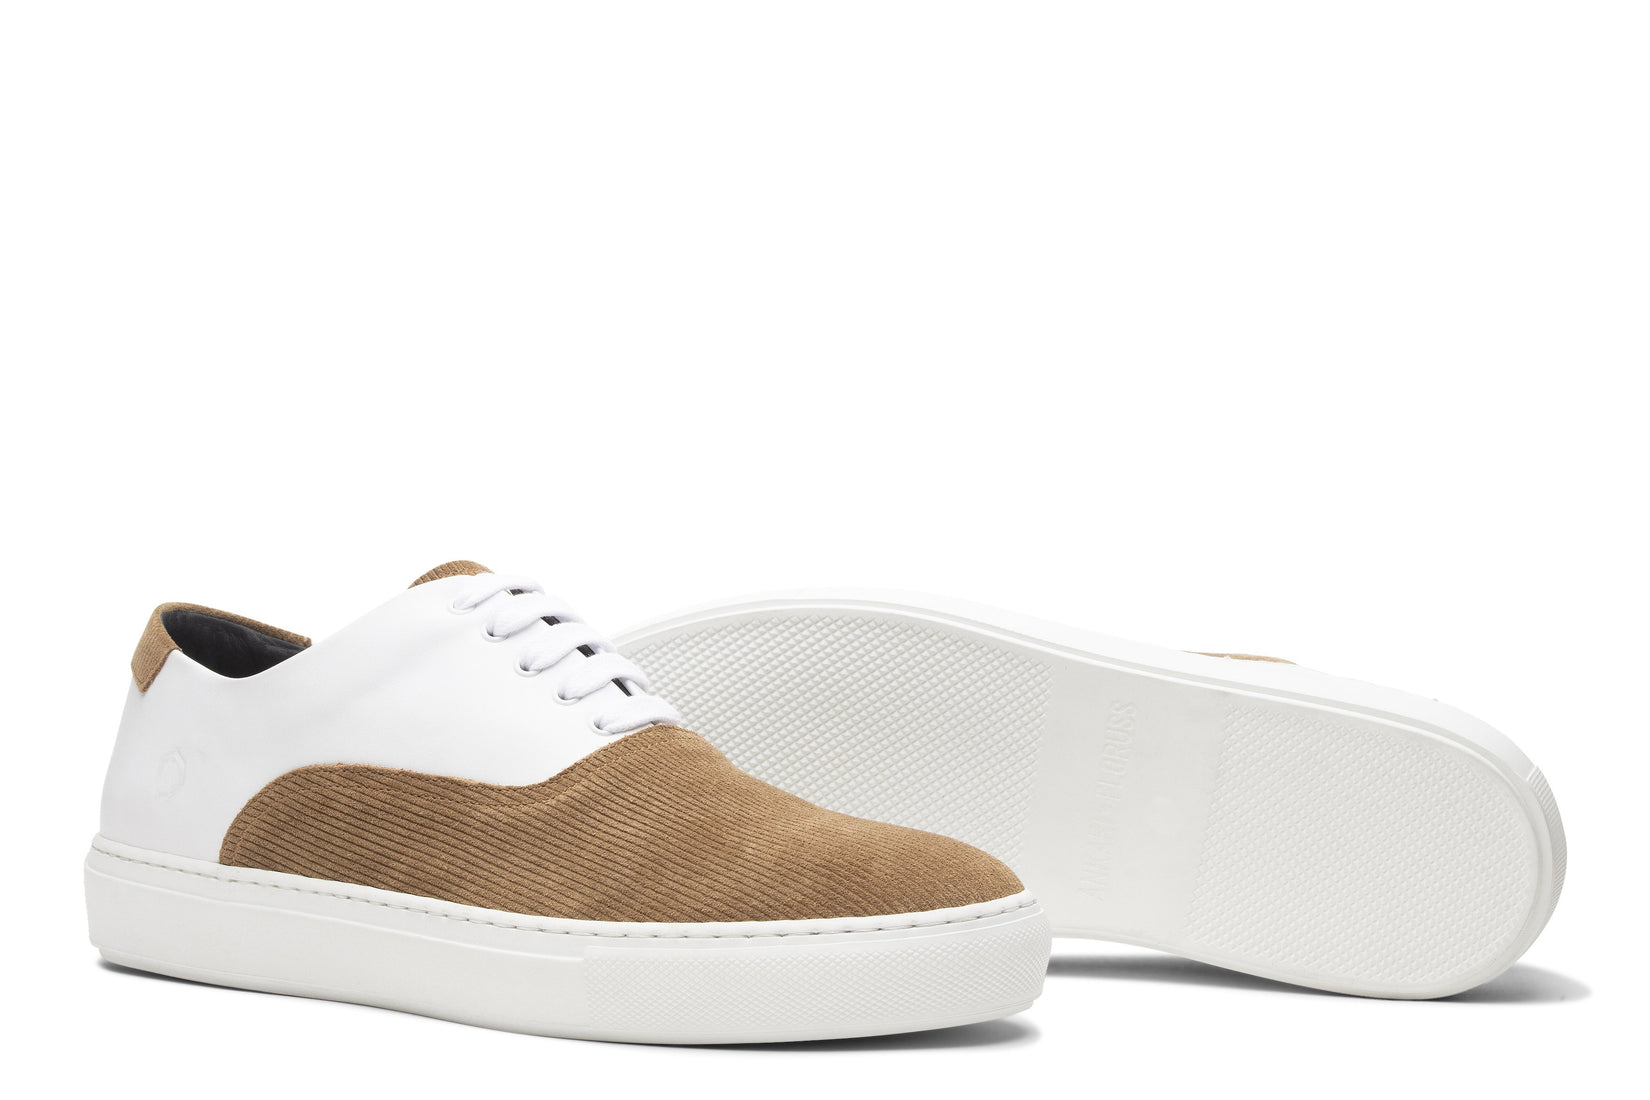 Sunday Two-Tone Skater Sneaker White/Caramel